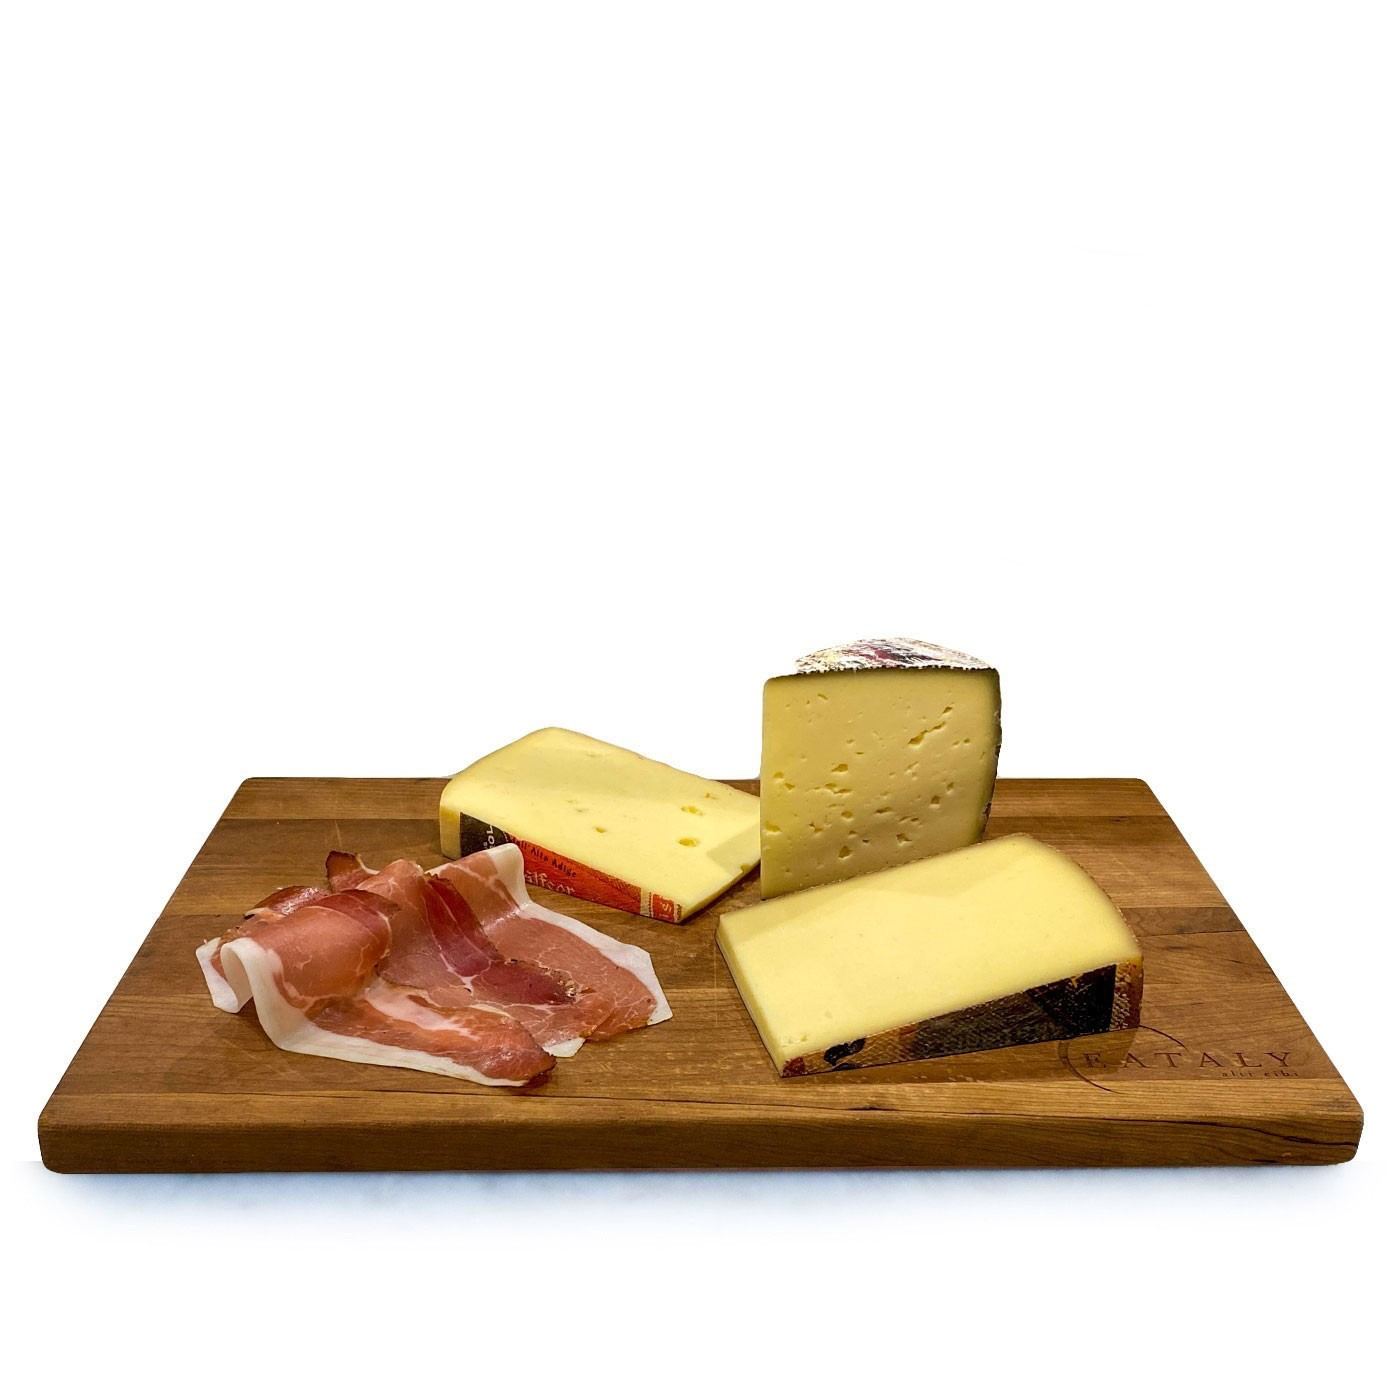 IDM Alto Adige - Südtirol Cured Meats and Cheese Bundle